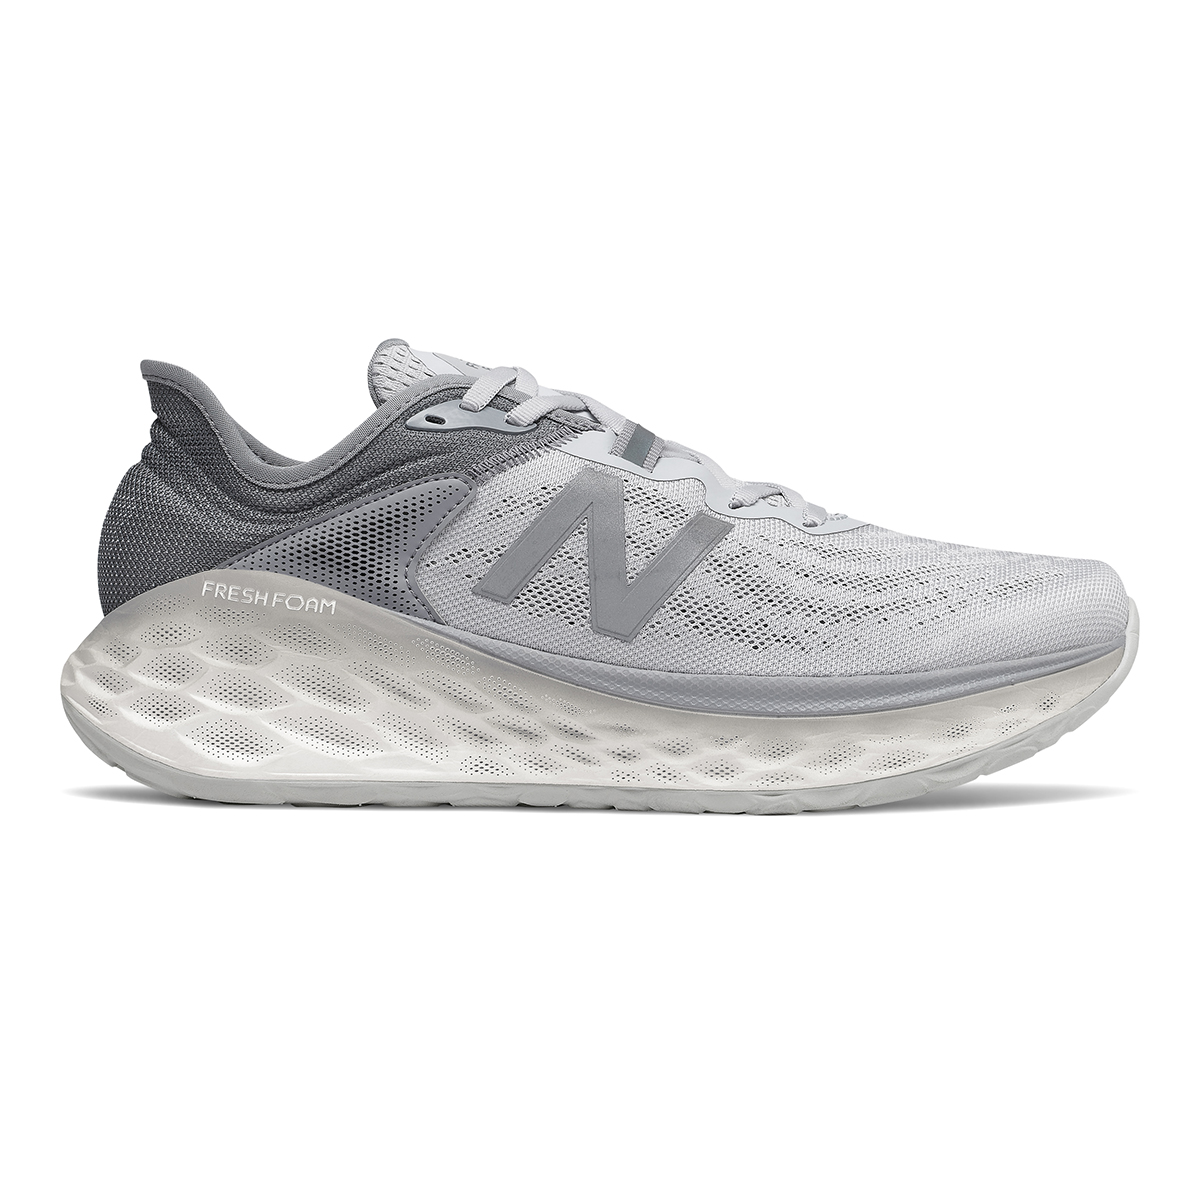 Men's New Balance Fresh Foam More V2 Running Shoe - Color: Light Aluminum - Size: 7 - Width: Wide, Light Aluminum, large, image 1